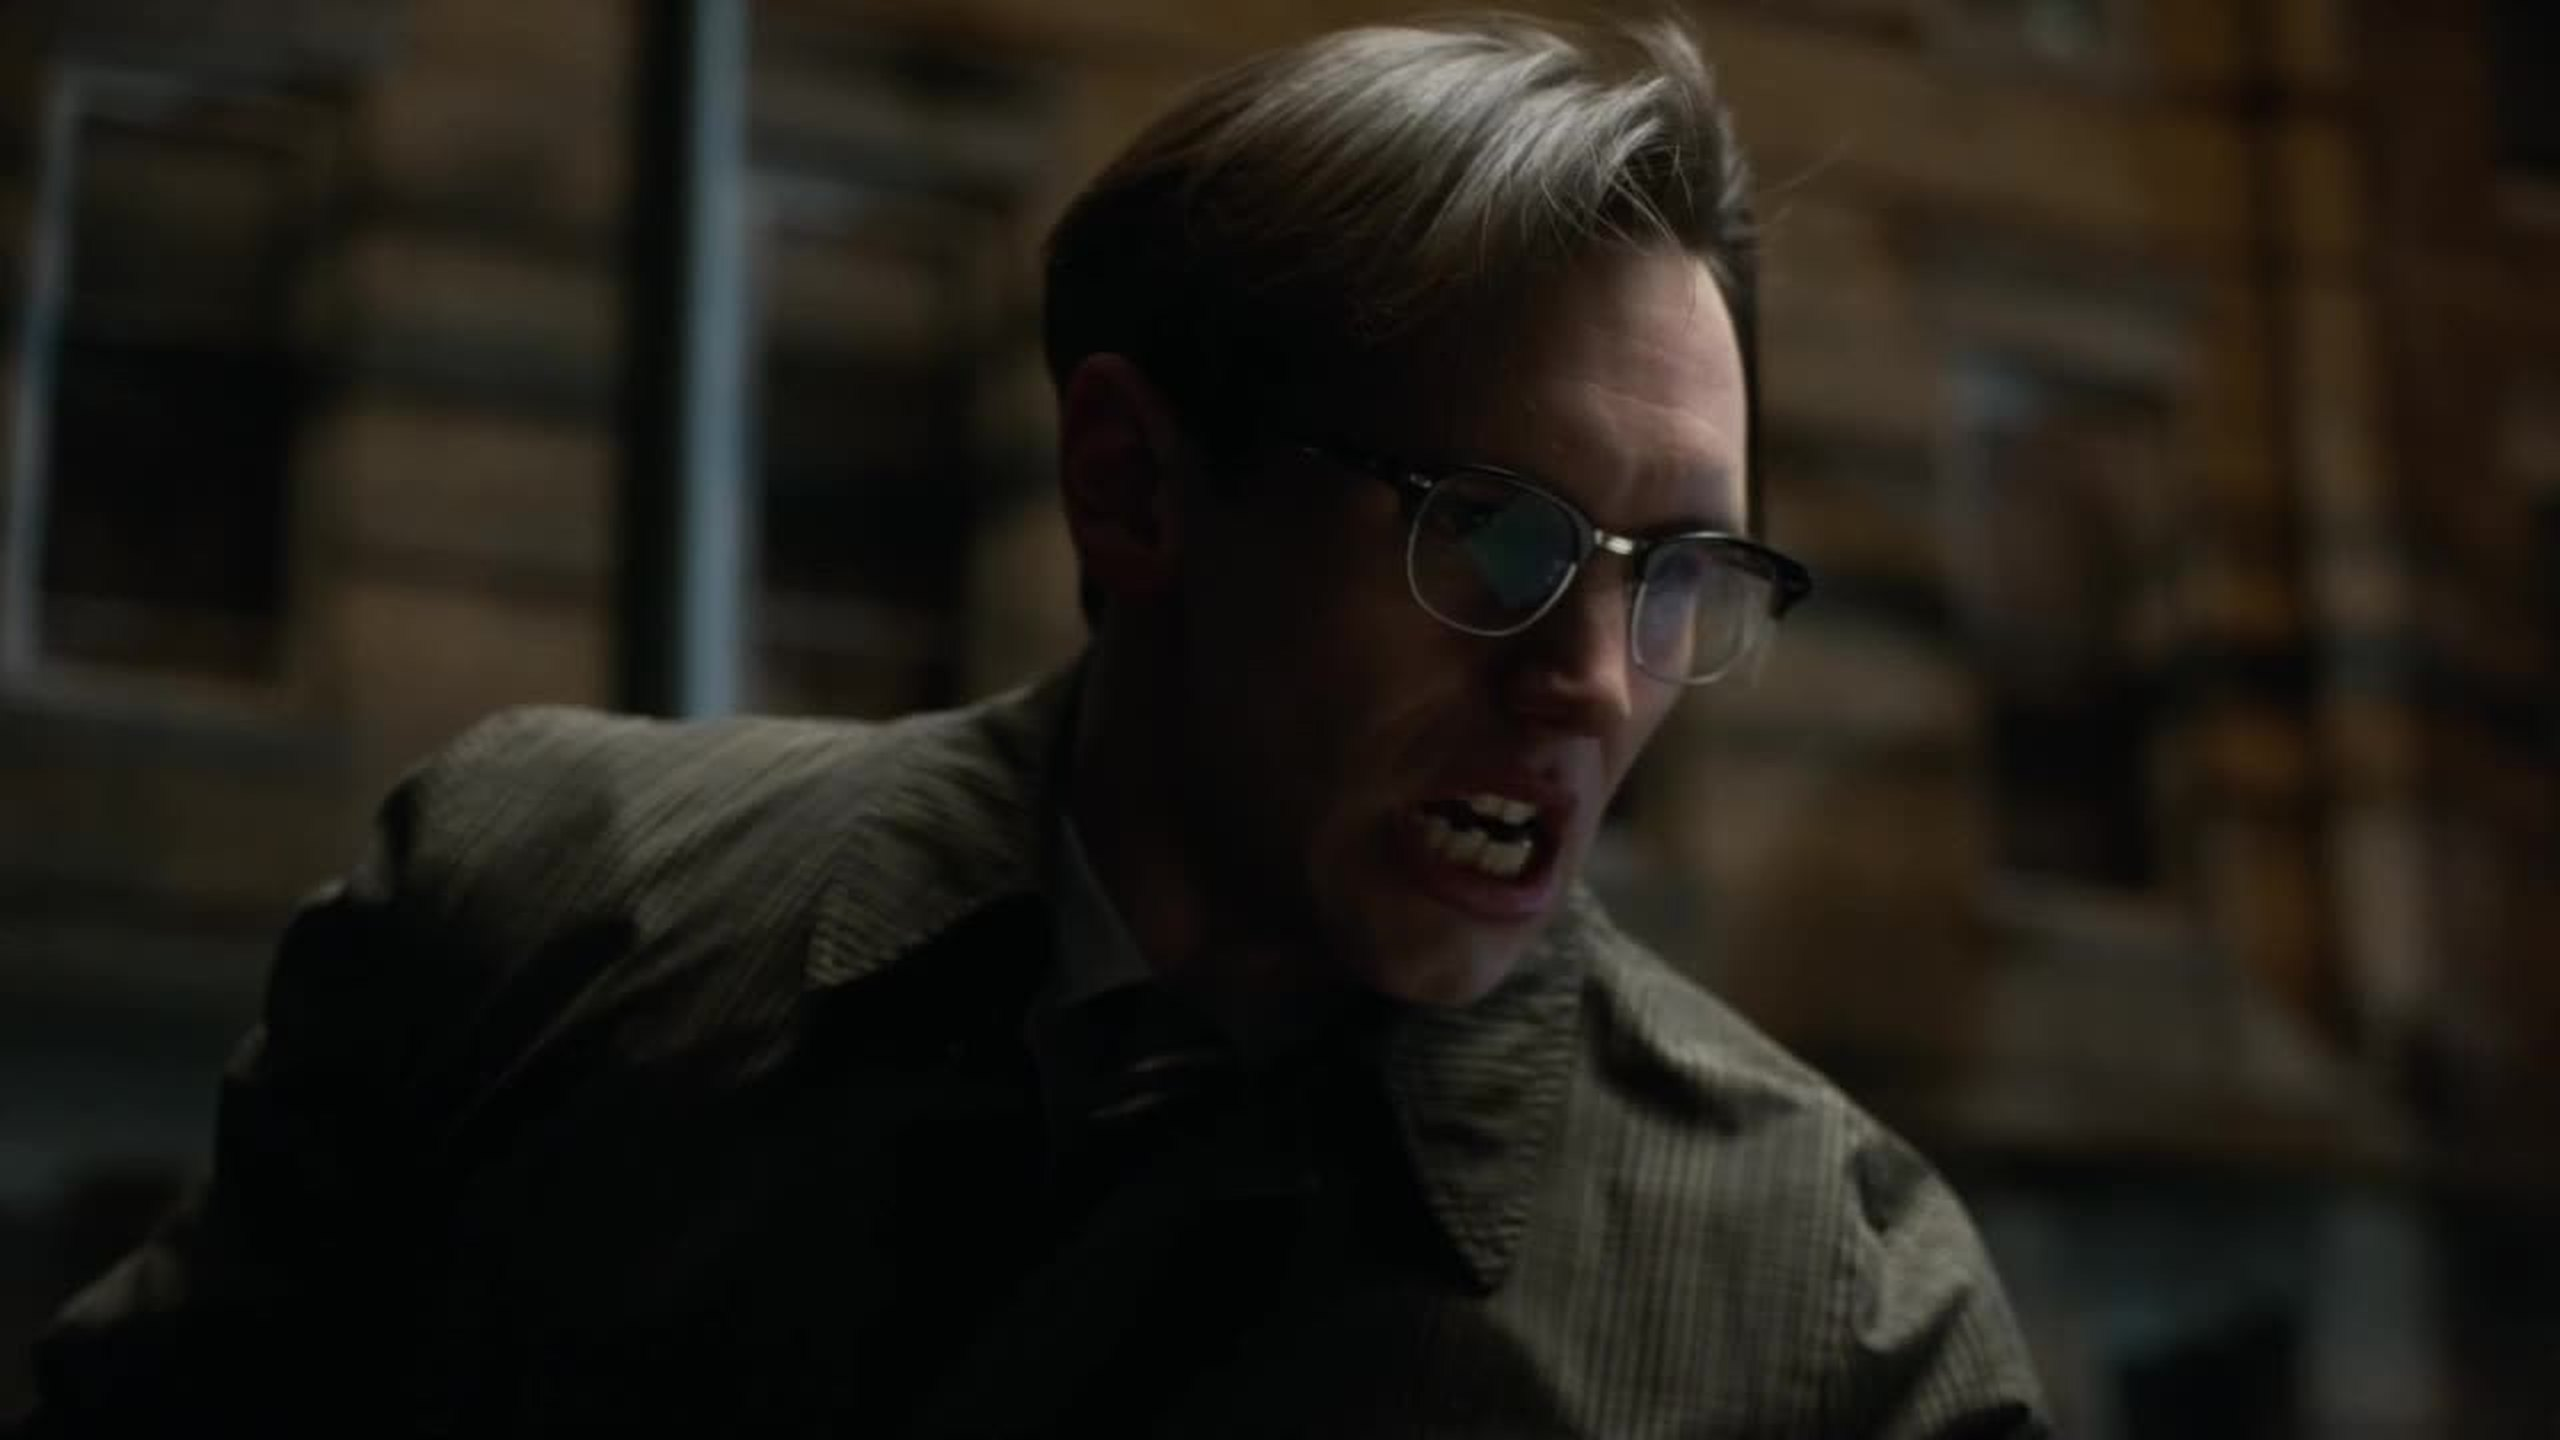 The actor that plays Nygma is really doing a great job. His face of insanity after he stabbed that guy was top notch.